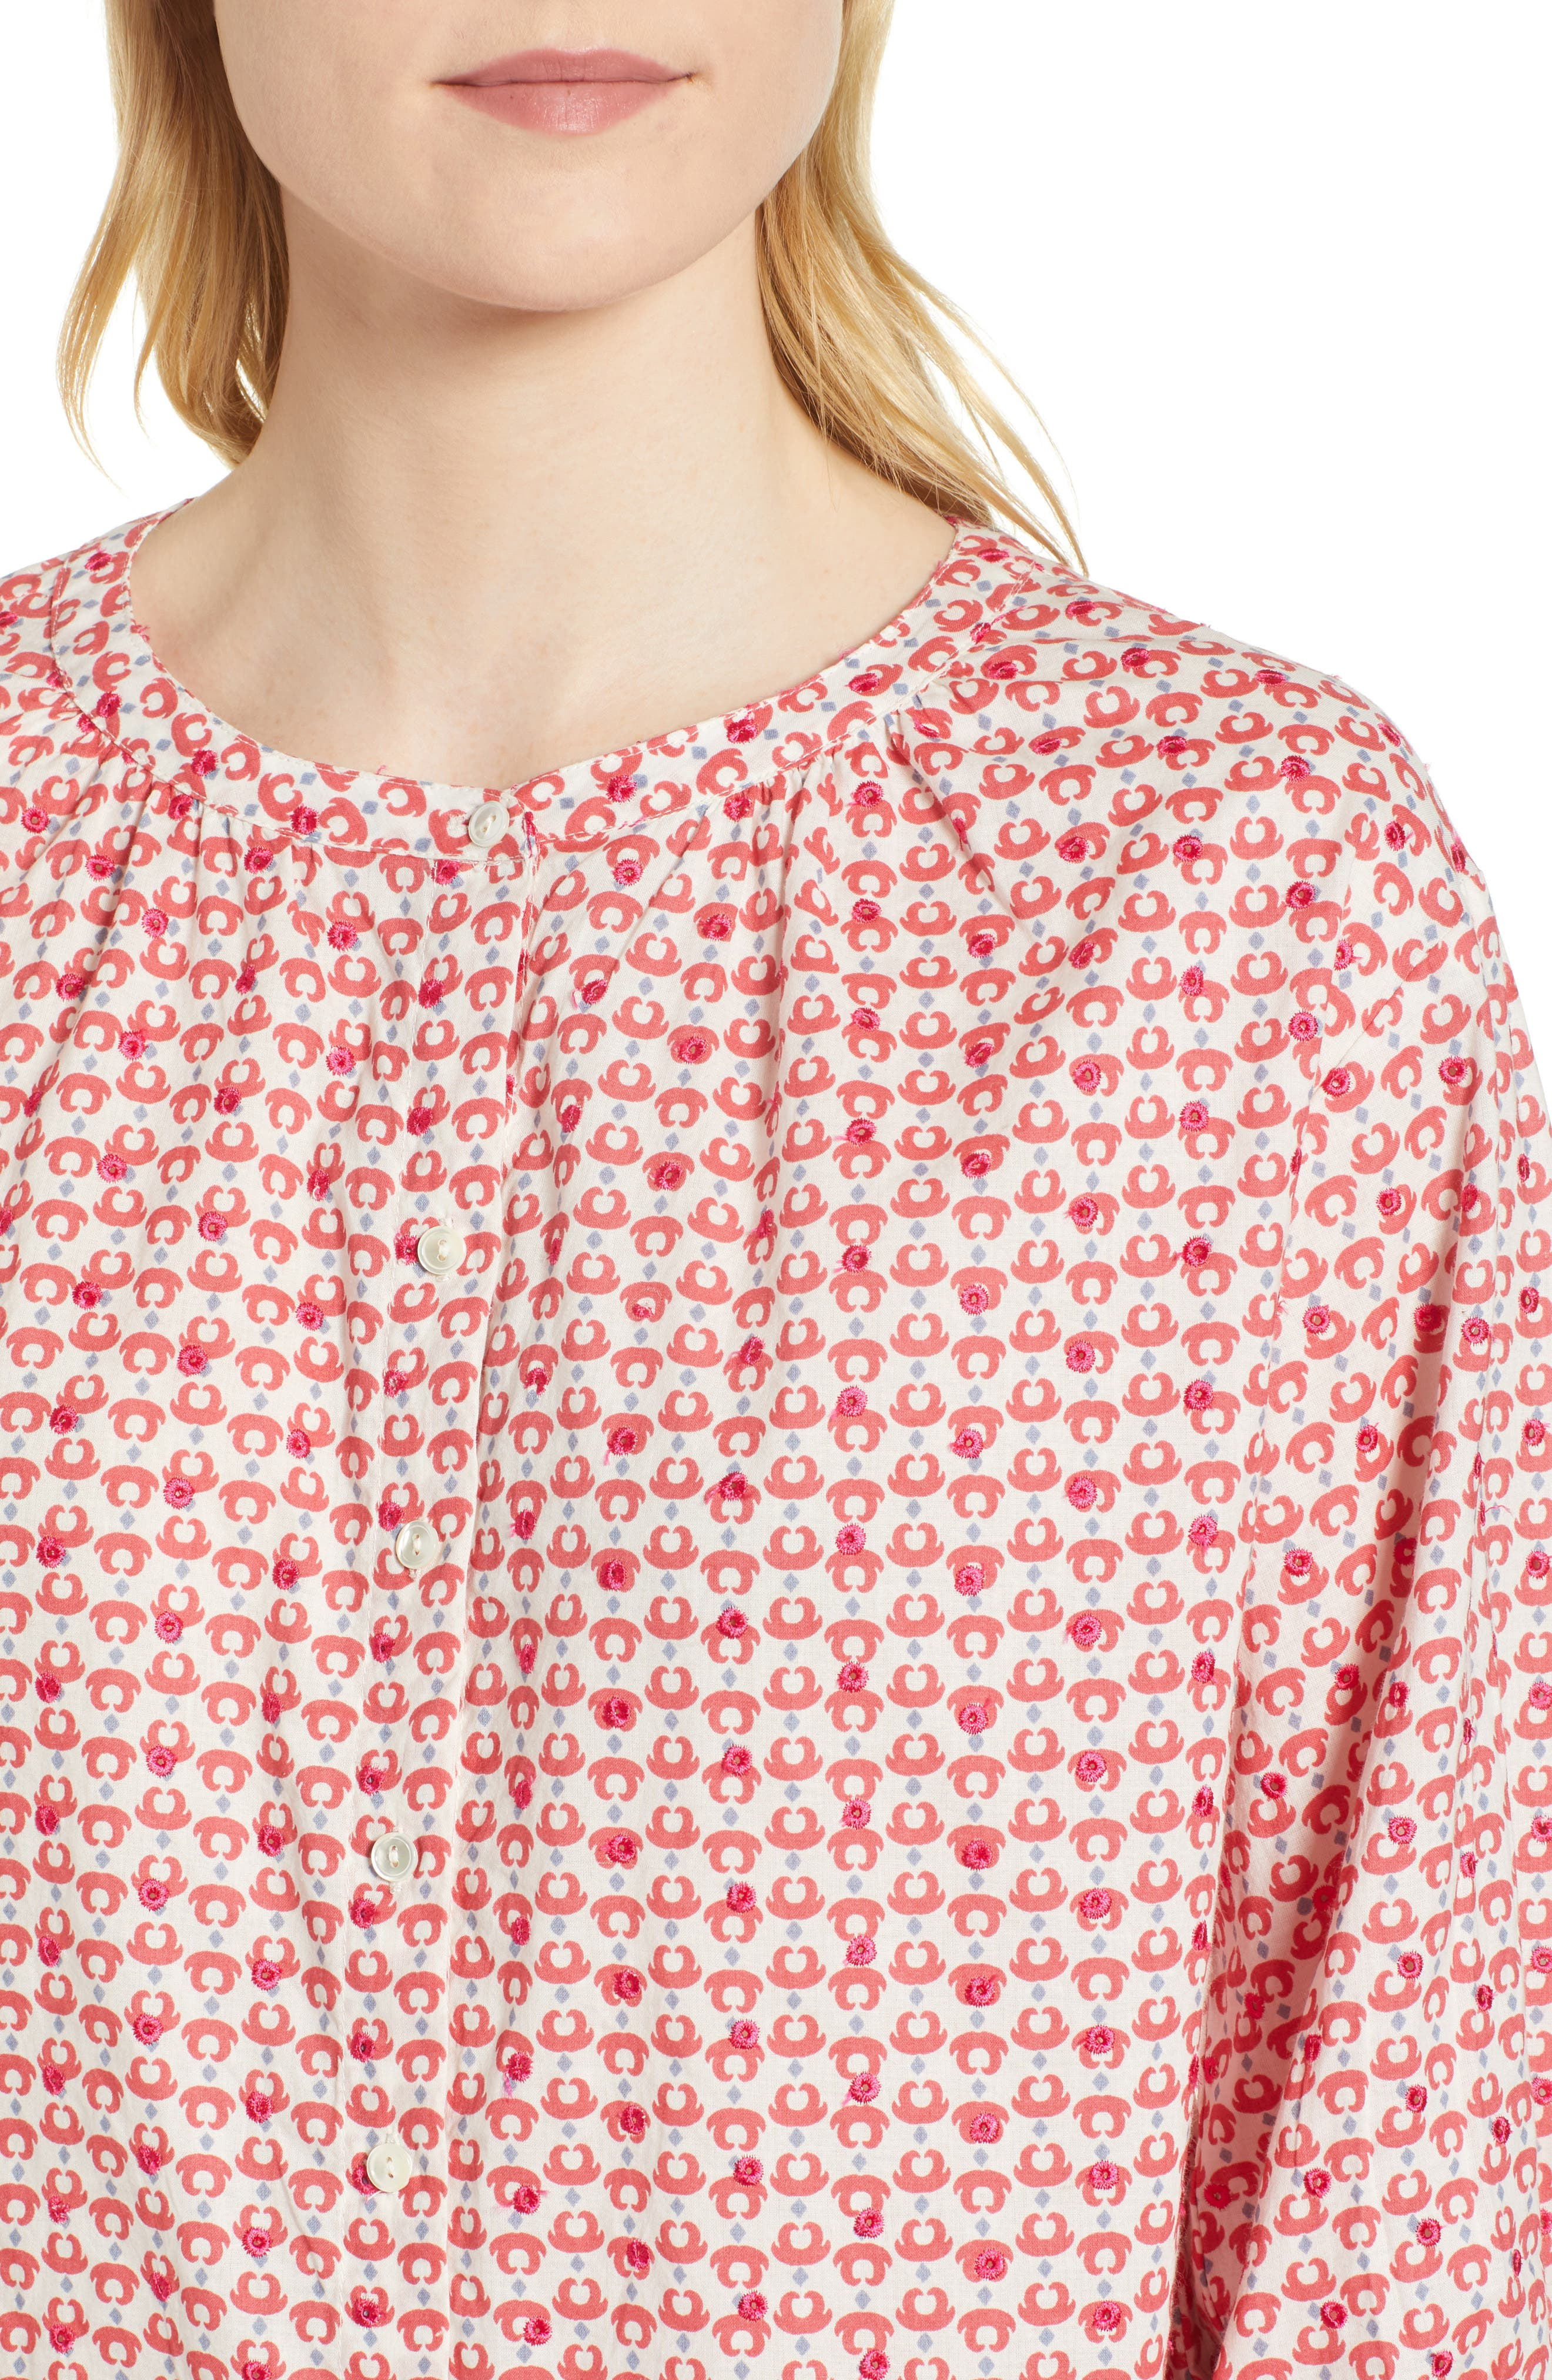 Embroidered Print Blouse,                             Alternate thumbnail 4, color,                             641